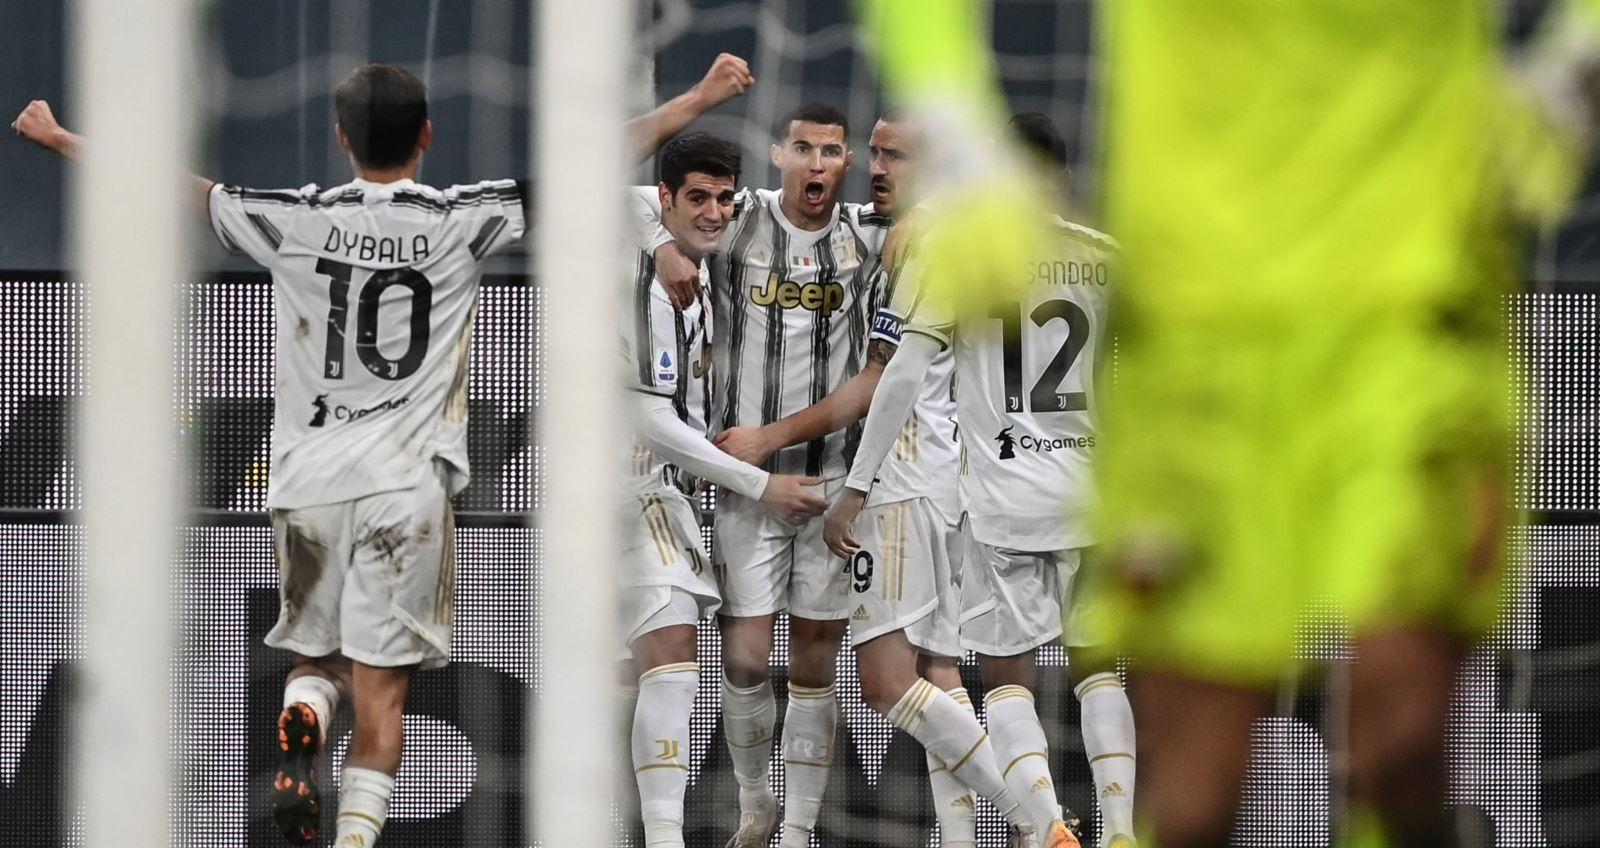 Video Genoa vs Juventus, Video clip bàn thắng Genoa vs Juventus, Bóng đá Ý, juventus, genoa, kết quả genoa vs juventus, dybala, cristiano ronaldo, ronaldo